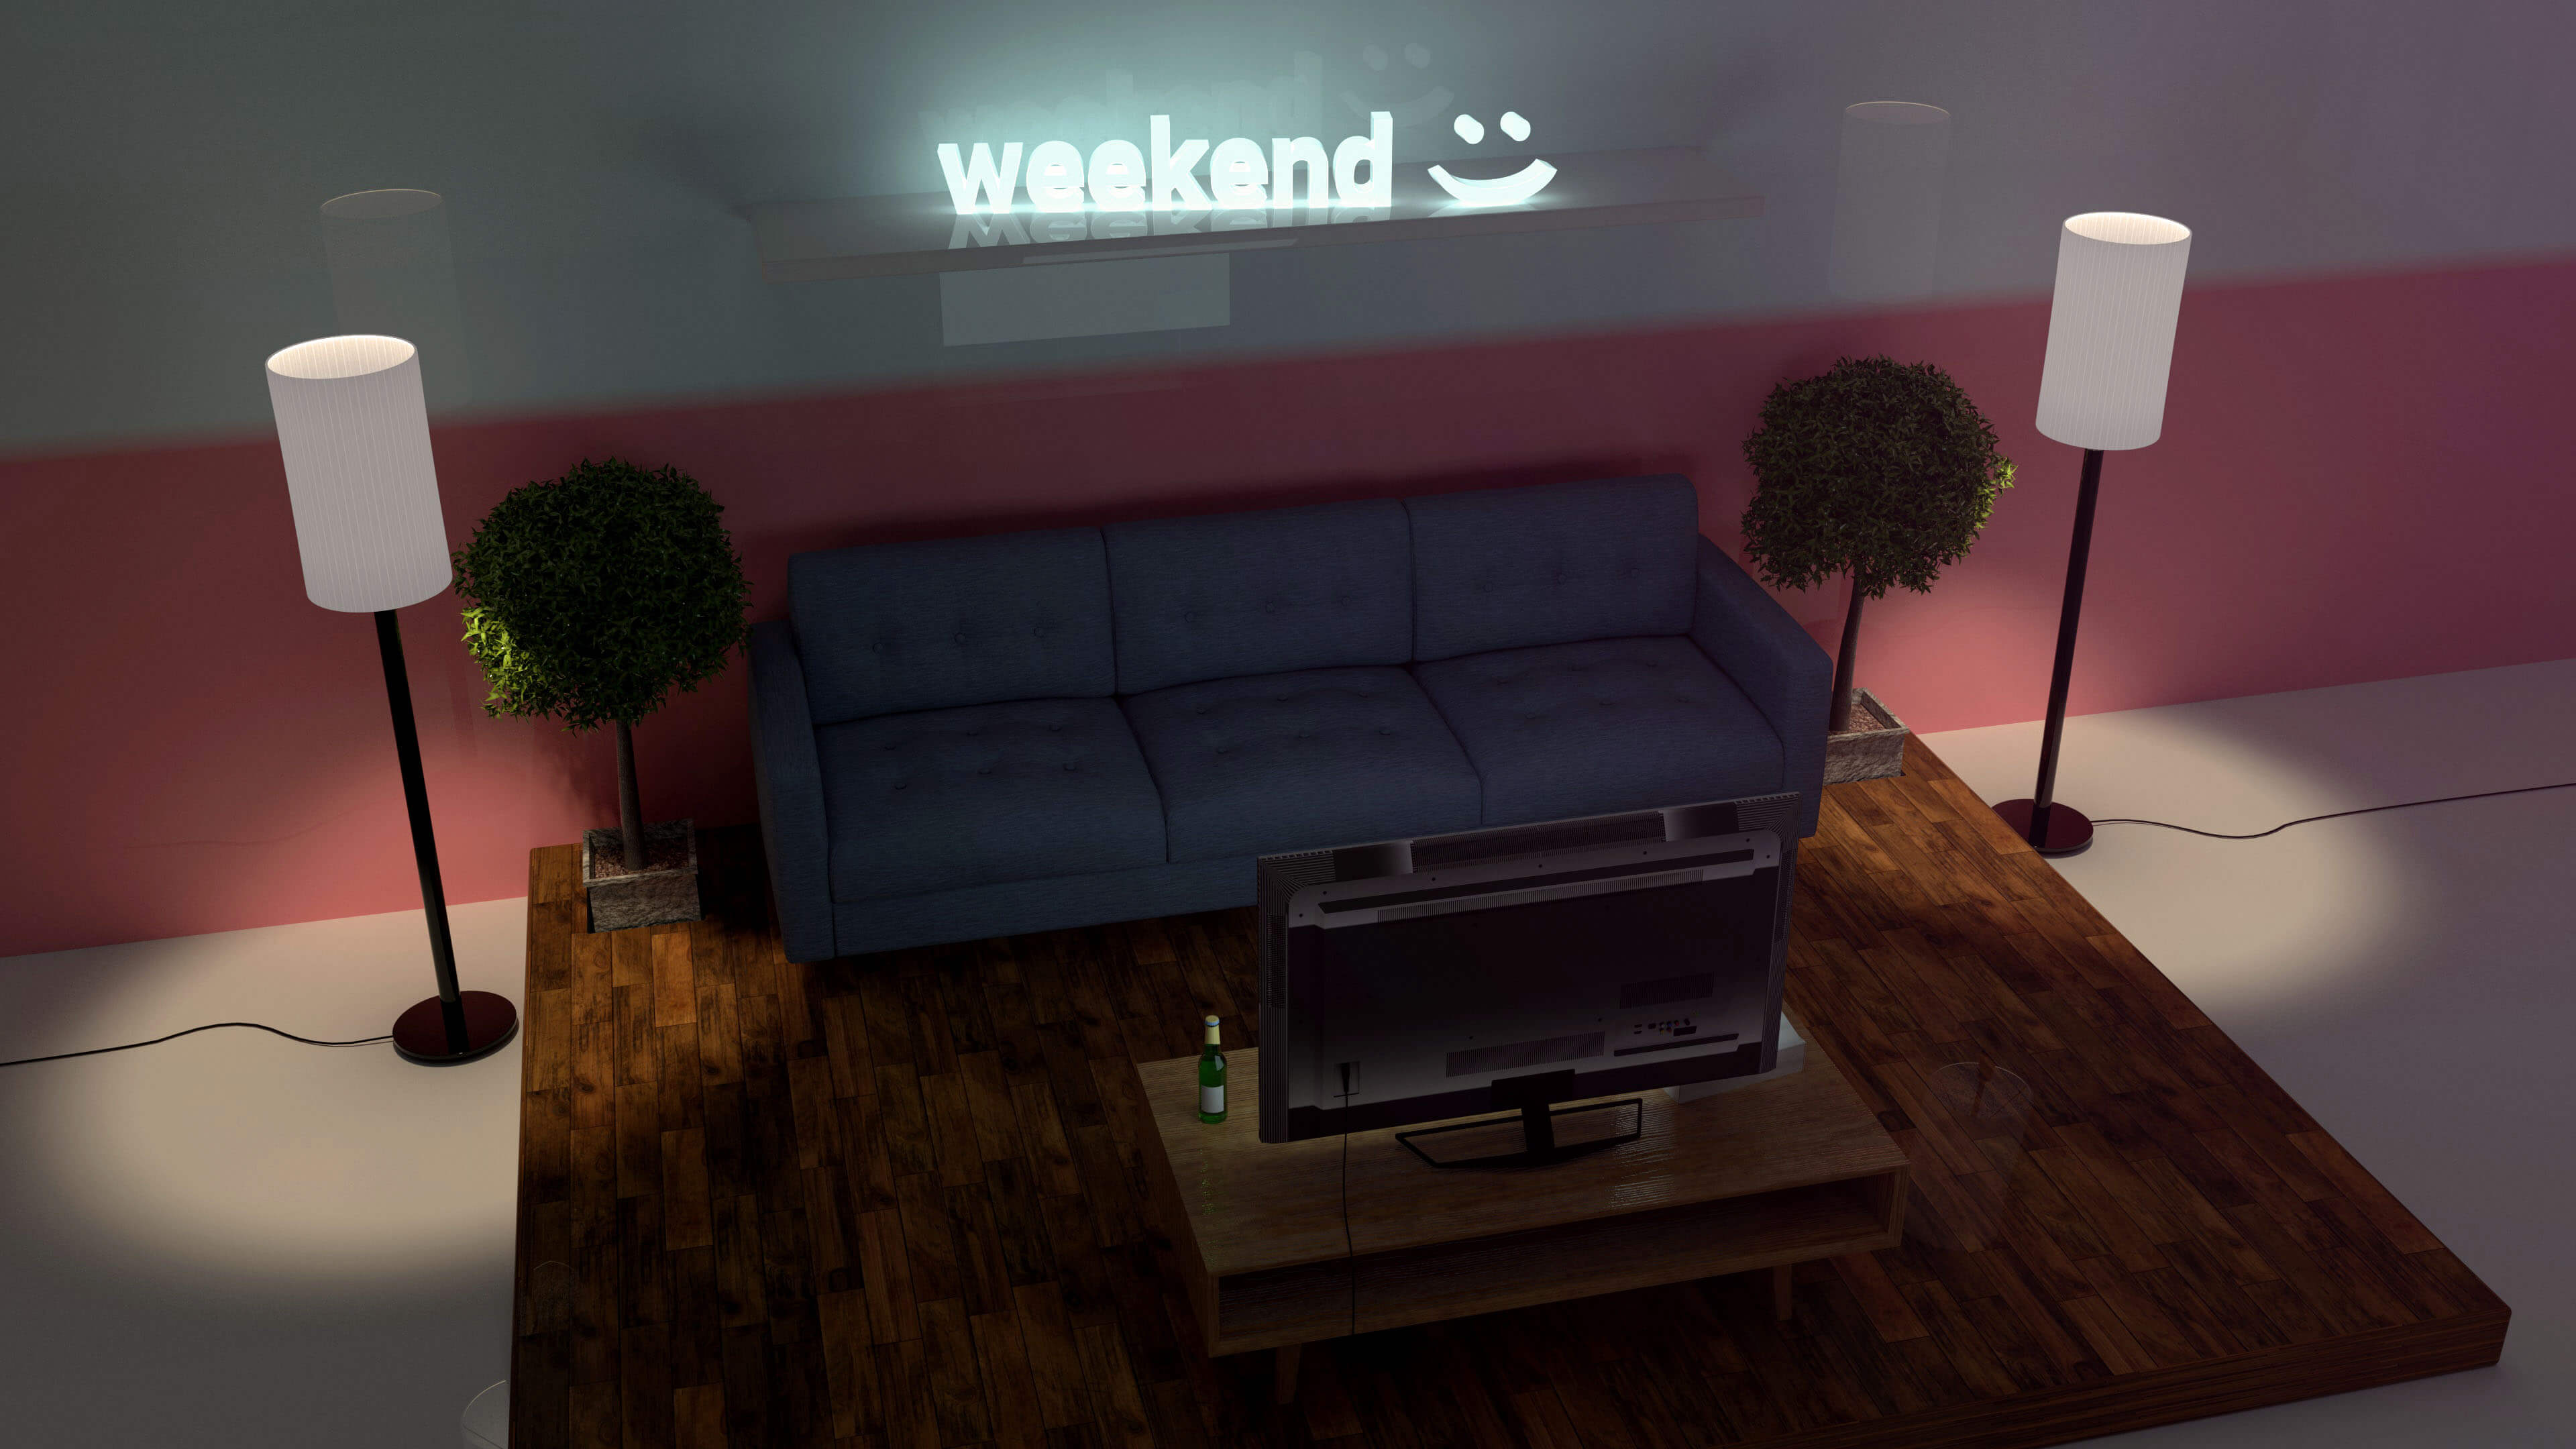 weekend_1_cc